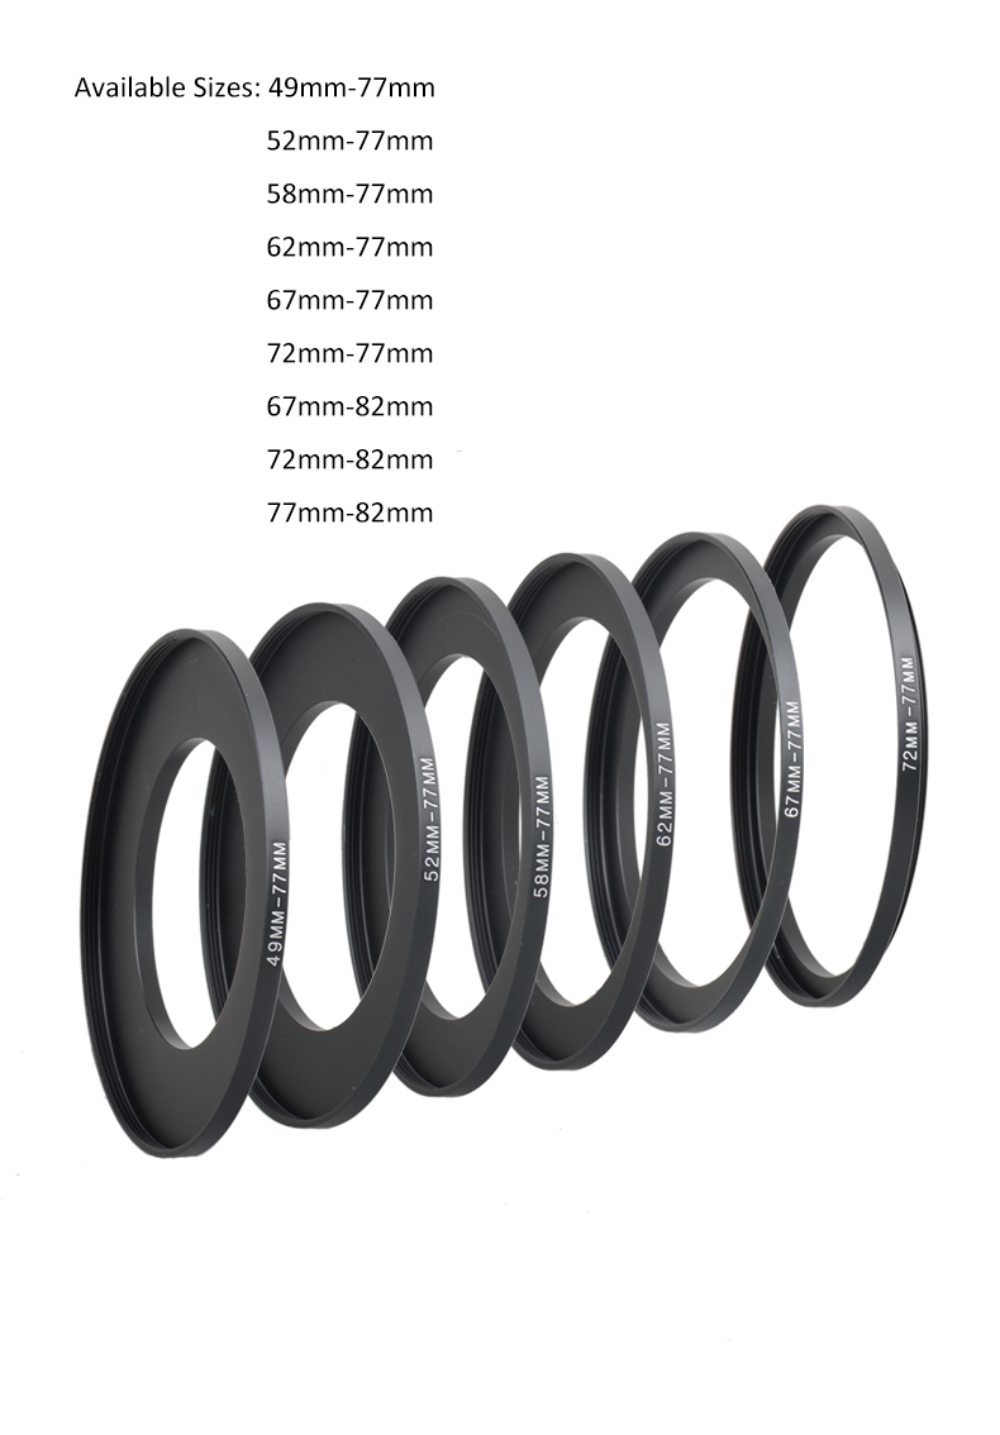 Kase Wolverine 72mm to 95mm Magnetic Step Up Filter Ring Adapter 72 95